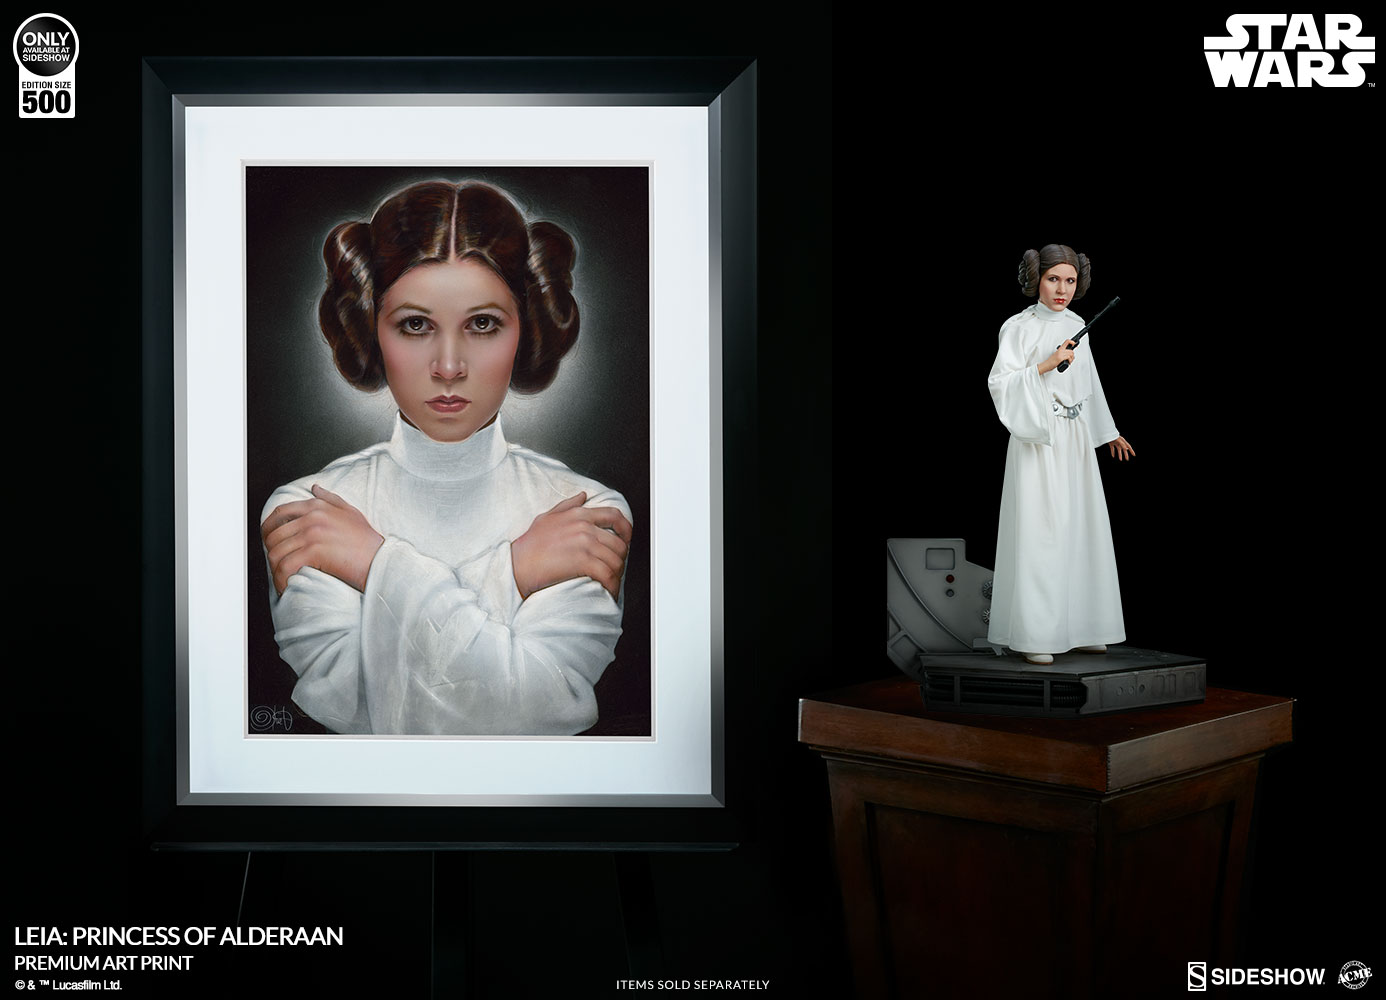 Leia: Princess of Alderaan AP 2